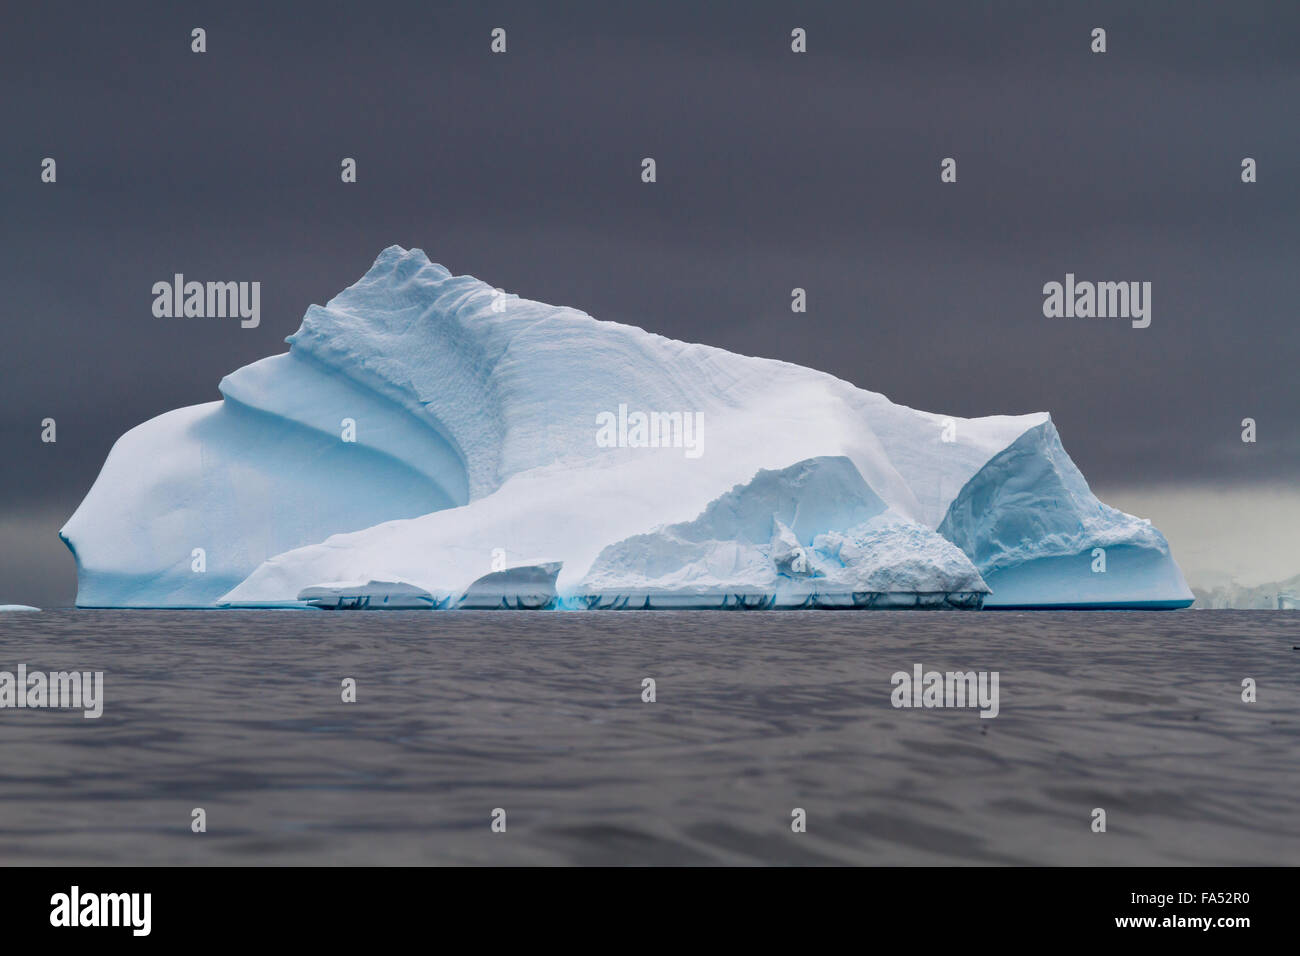 Dramatic iceberg against a moody sky in the Antarctic Ocean - Stock Image